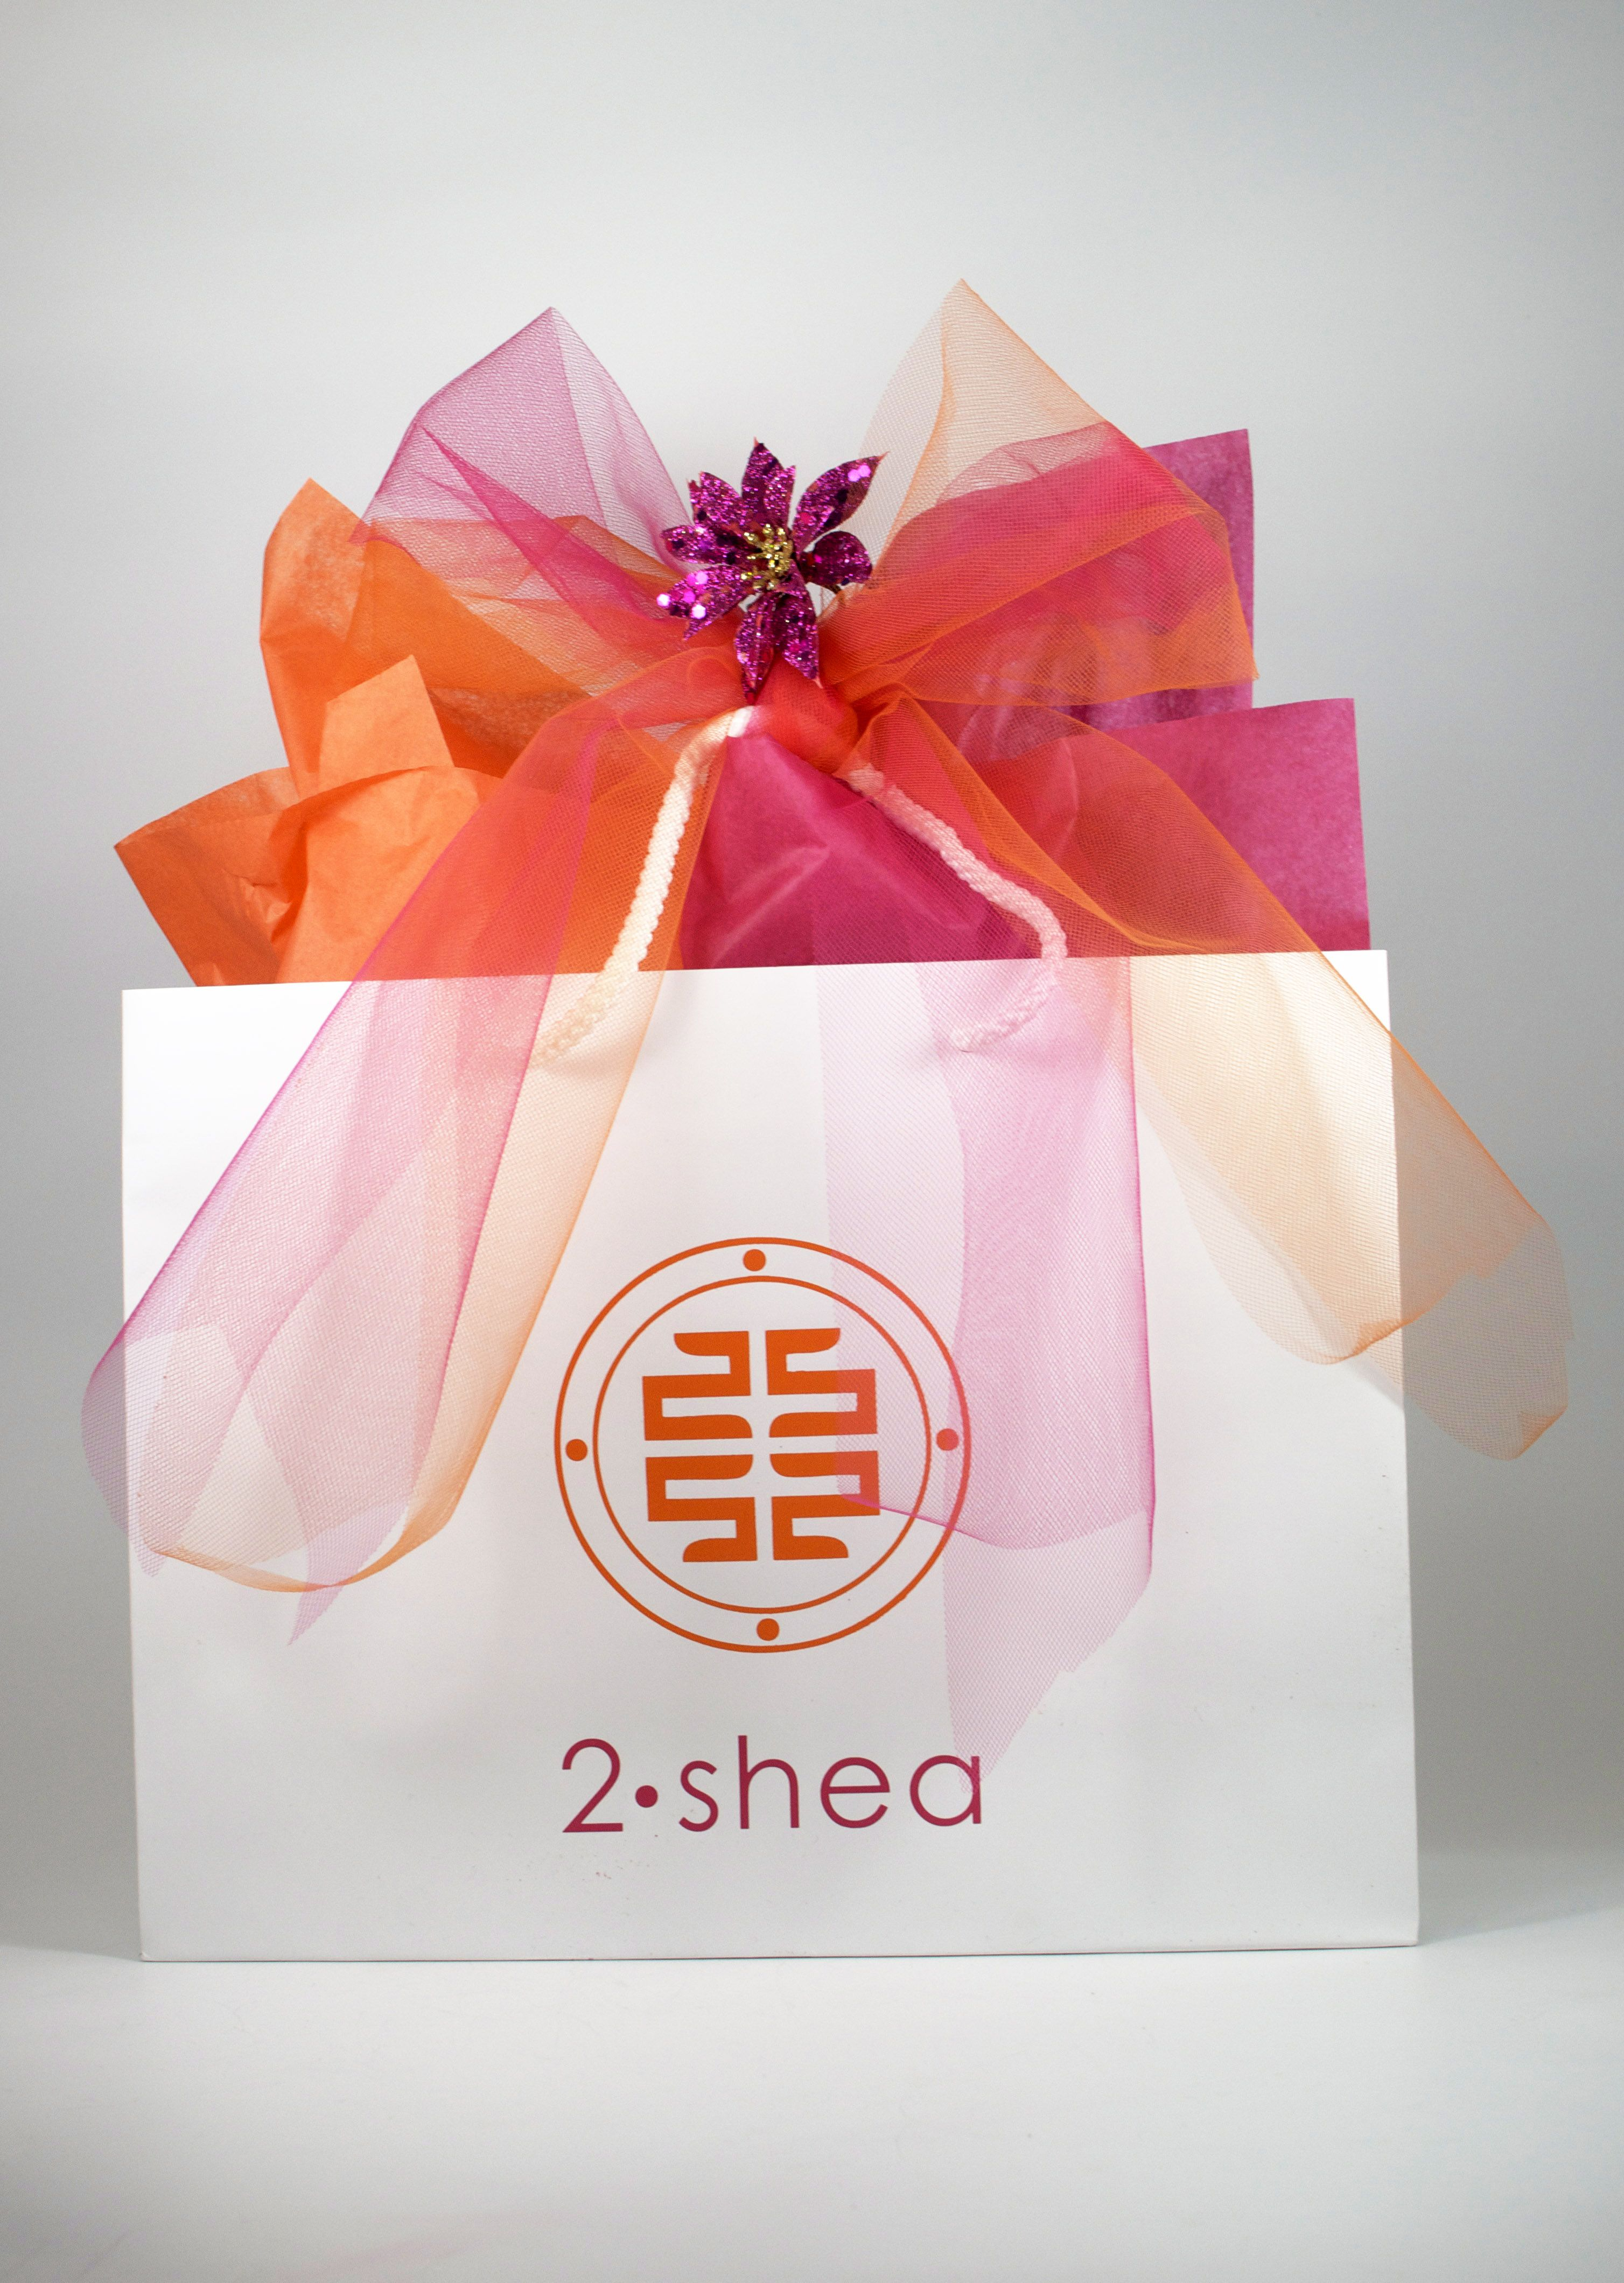 Its all in the details-  come see us for your next gift giving occasion!